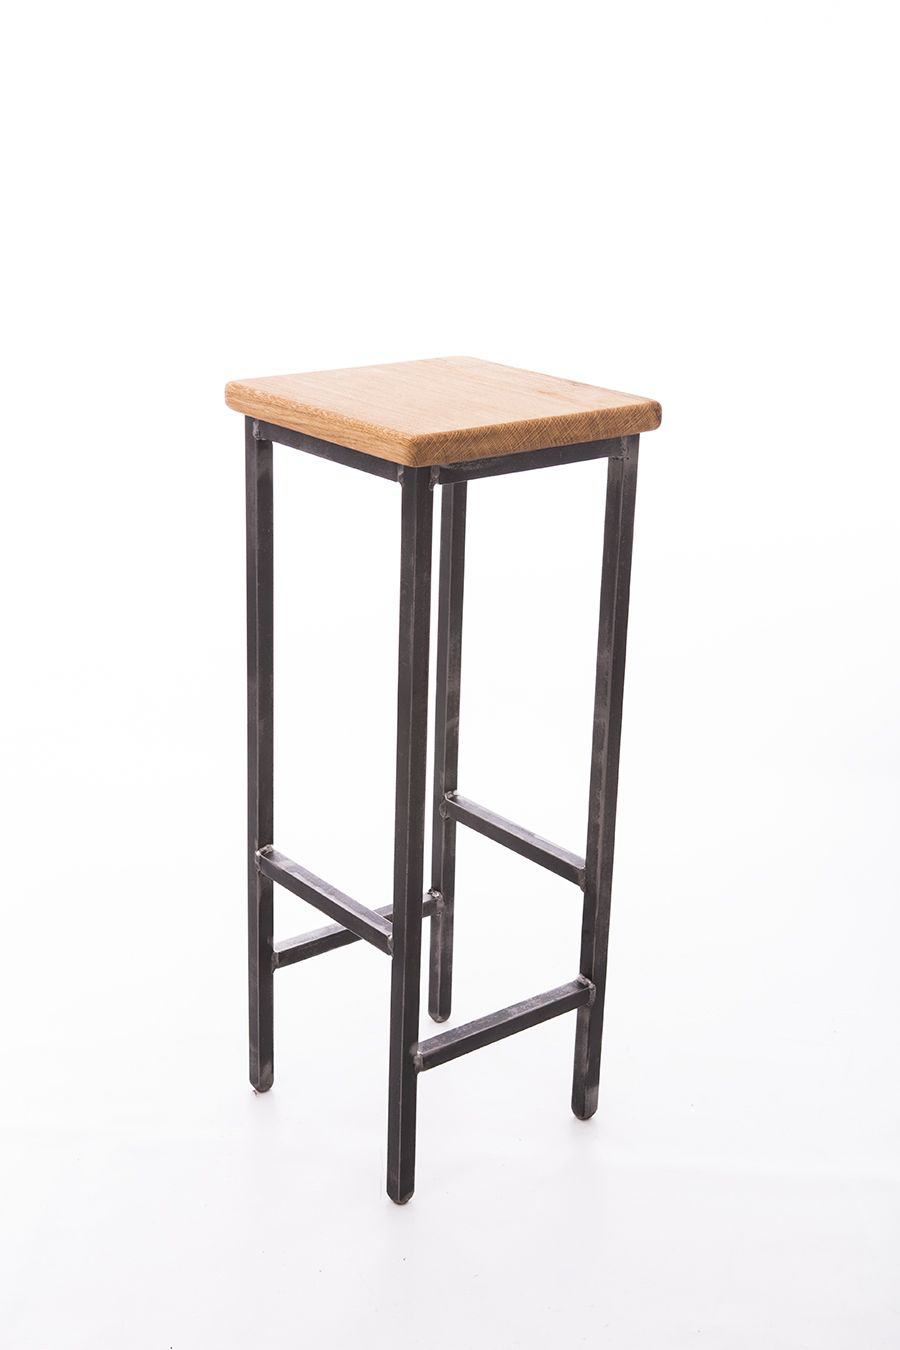 raw steel furniture. Bar Stool, Industrial Style Made With Steel Square Tube And English Oak Seat.I Can Make Seats In Any Wood Type. Raw Finished Beeswax. Furniture